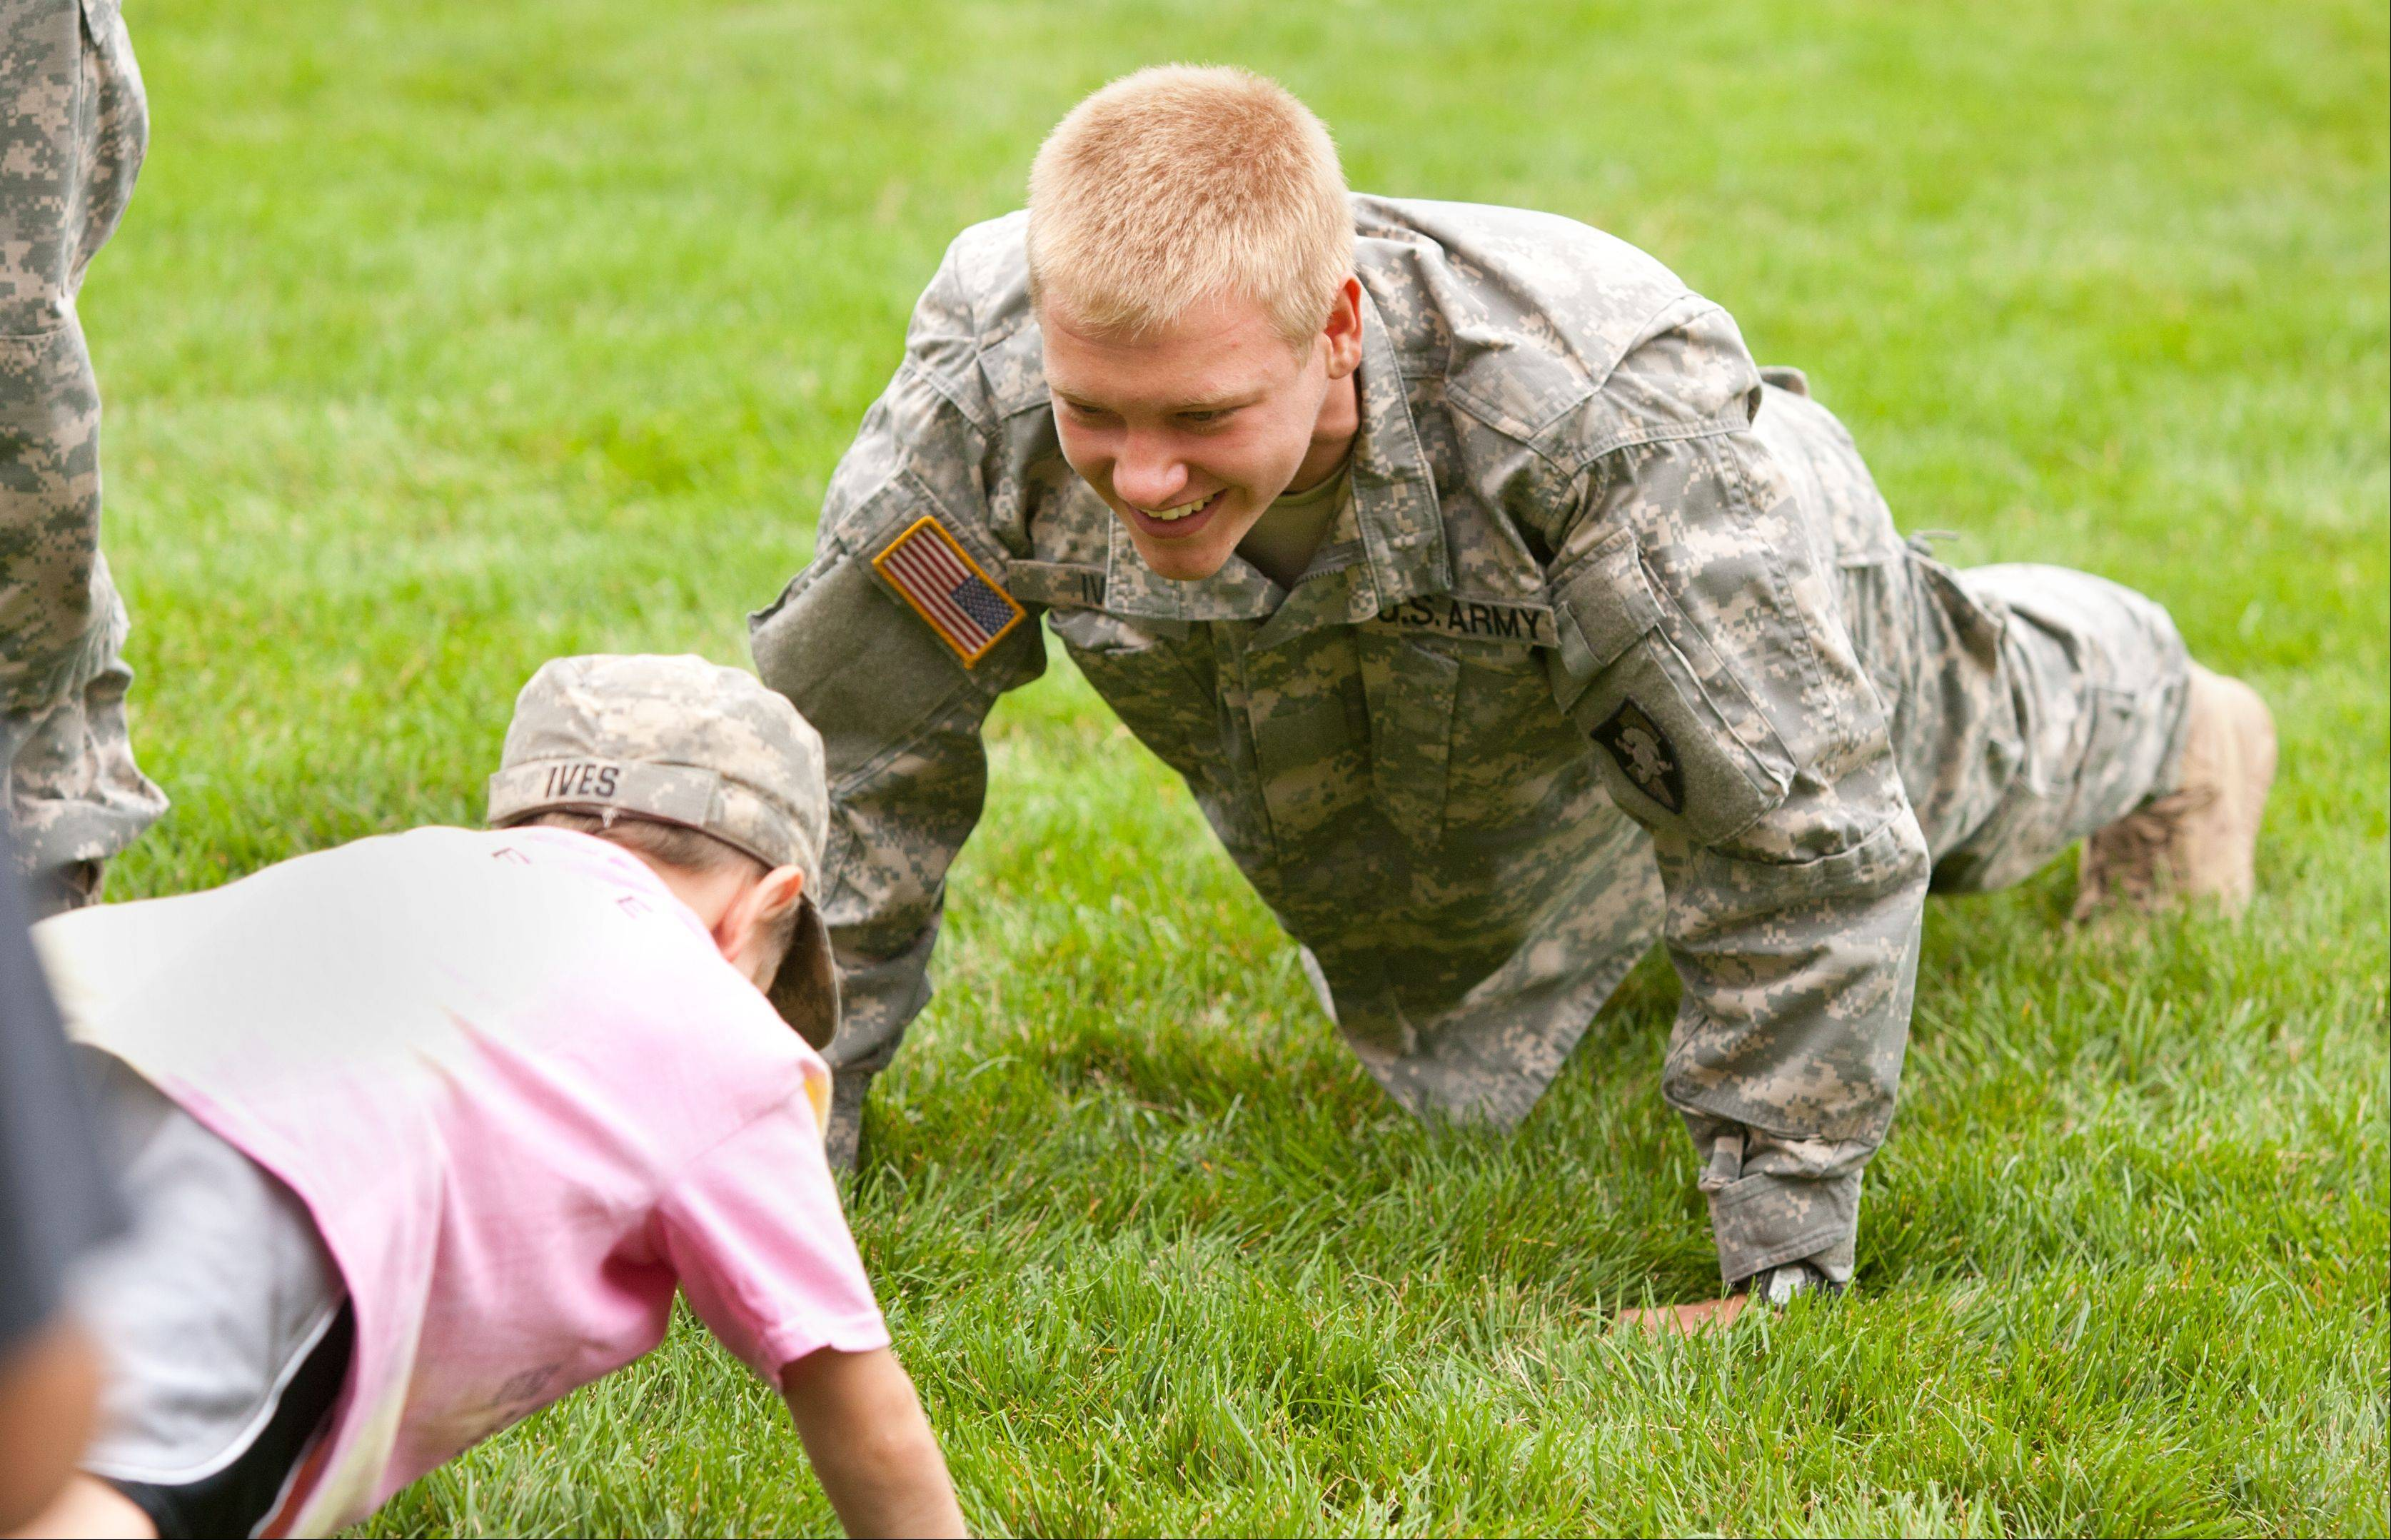 Nick Ives, a cadet at West Point, monitors pushups during Tuesday's inaugural health and fitness boot camp for children ages 3 through 12 at Cantigny Park in Wheaton.